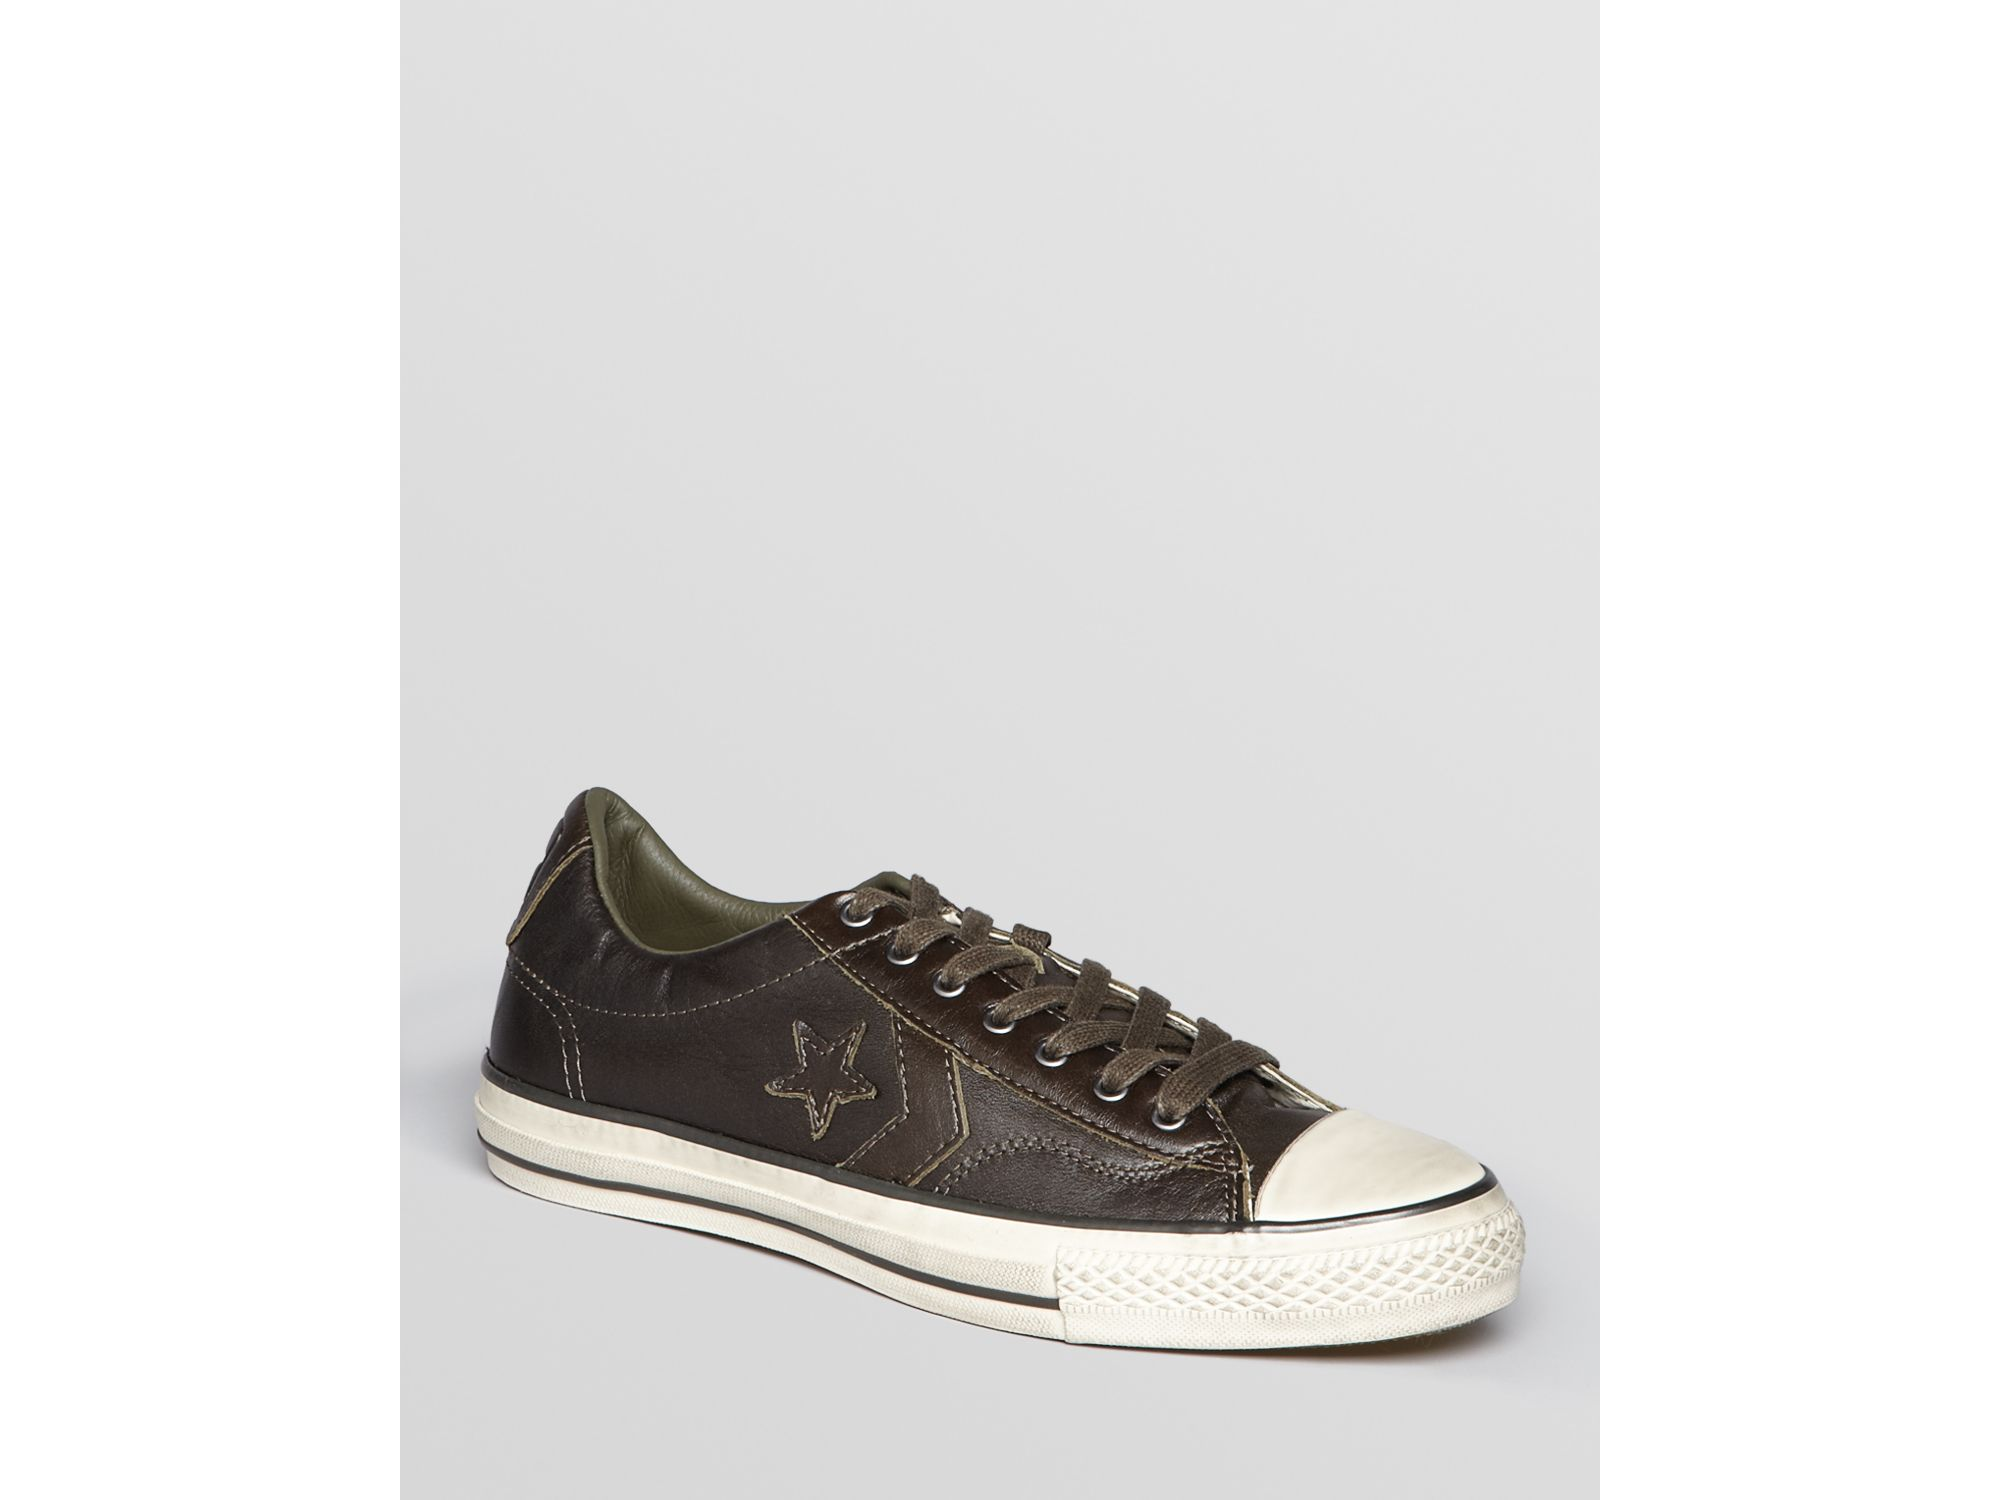 John Varvatos Converse By Player Burnished Leather Low Top